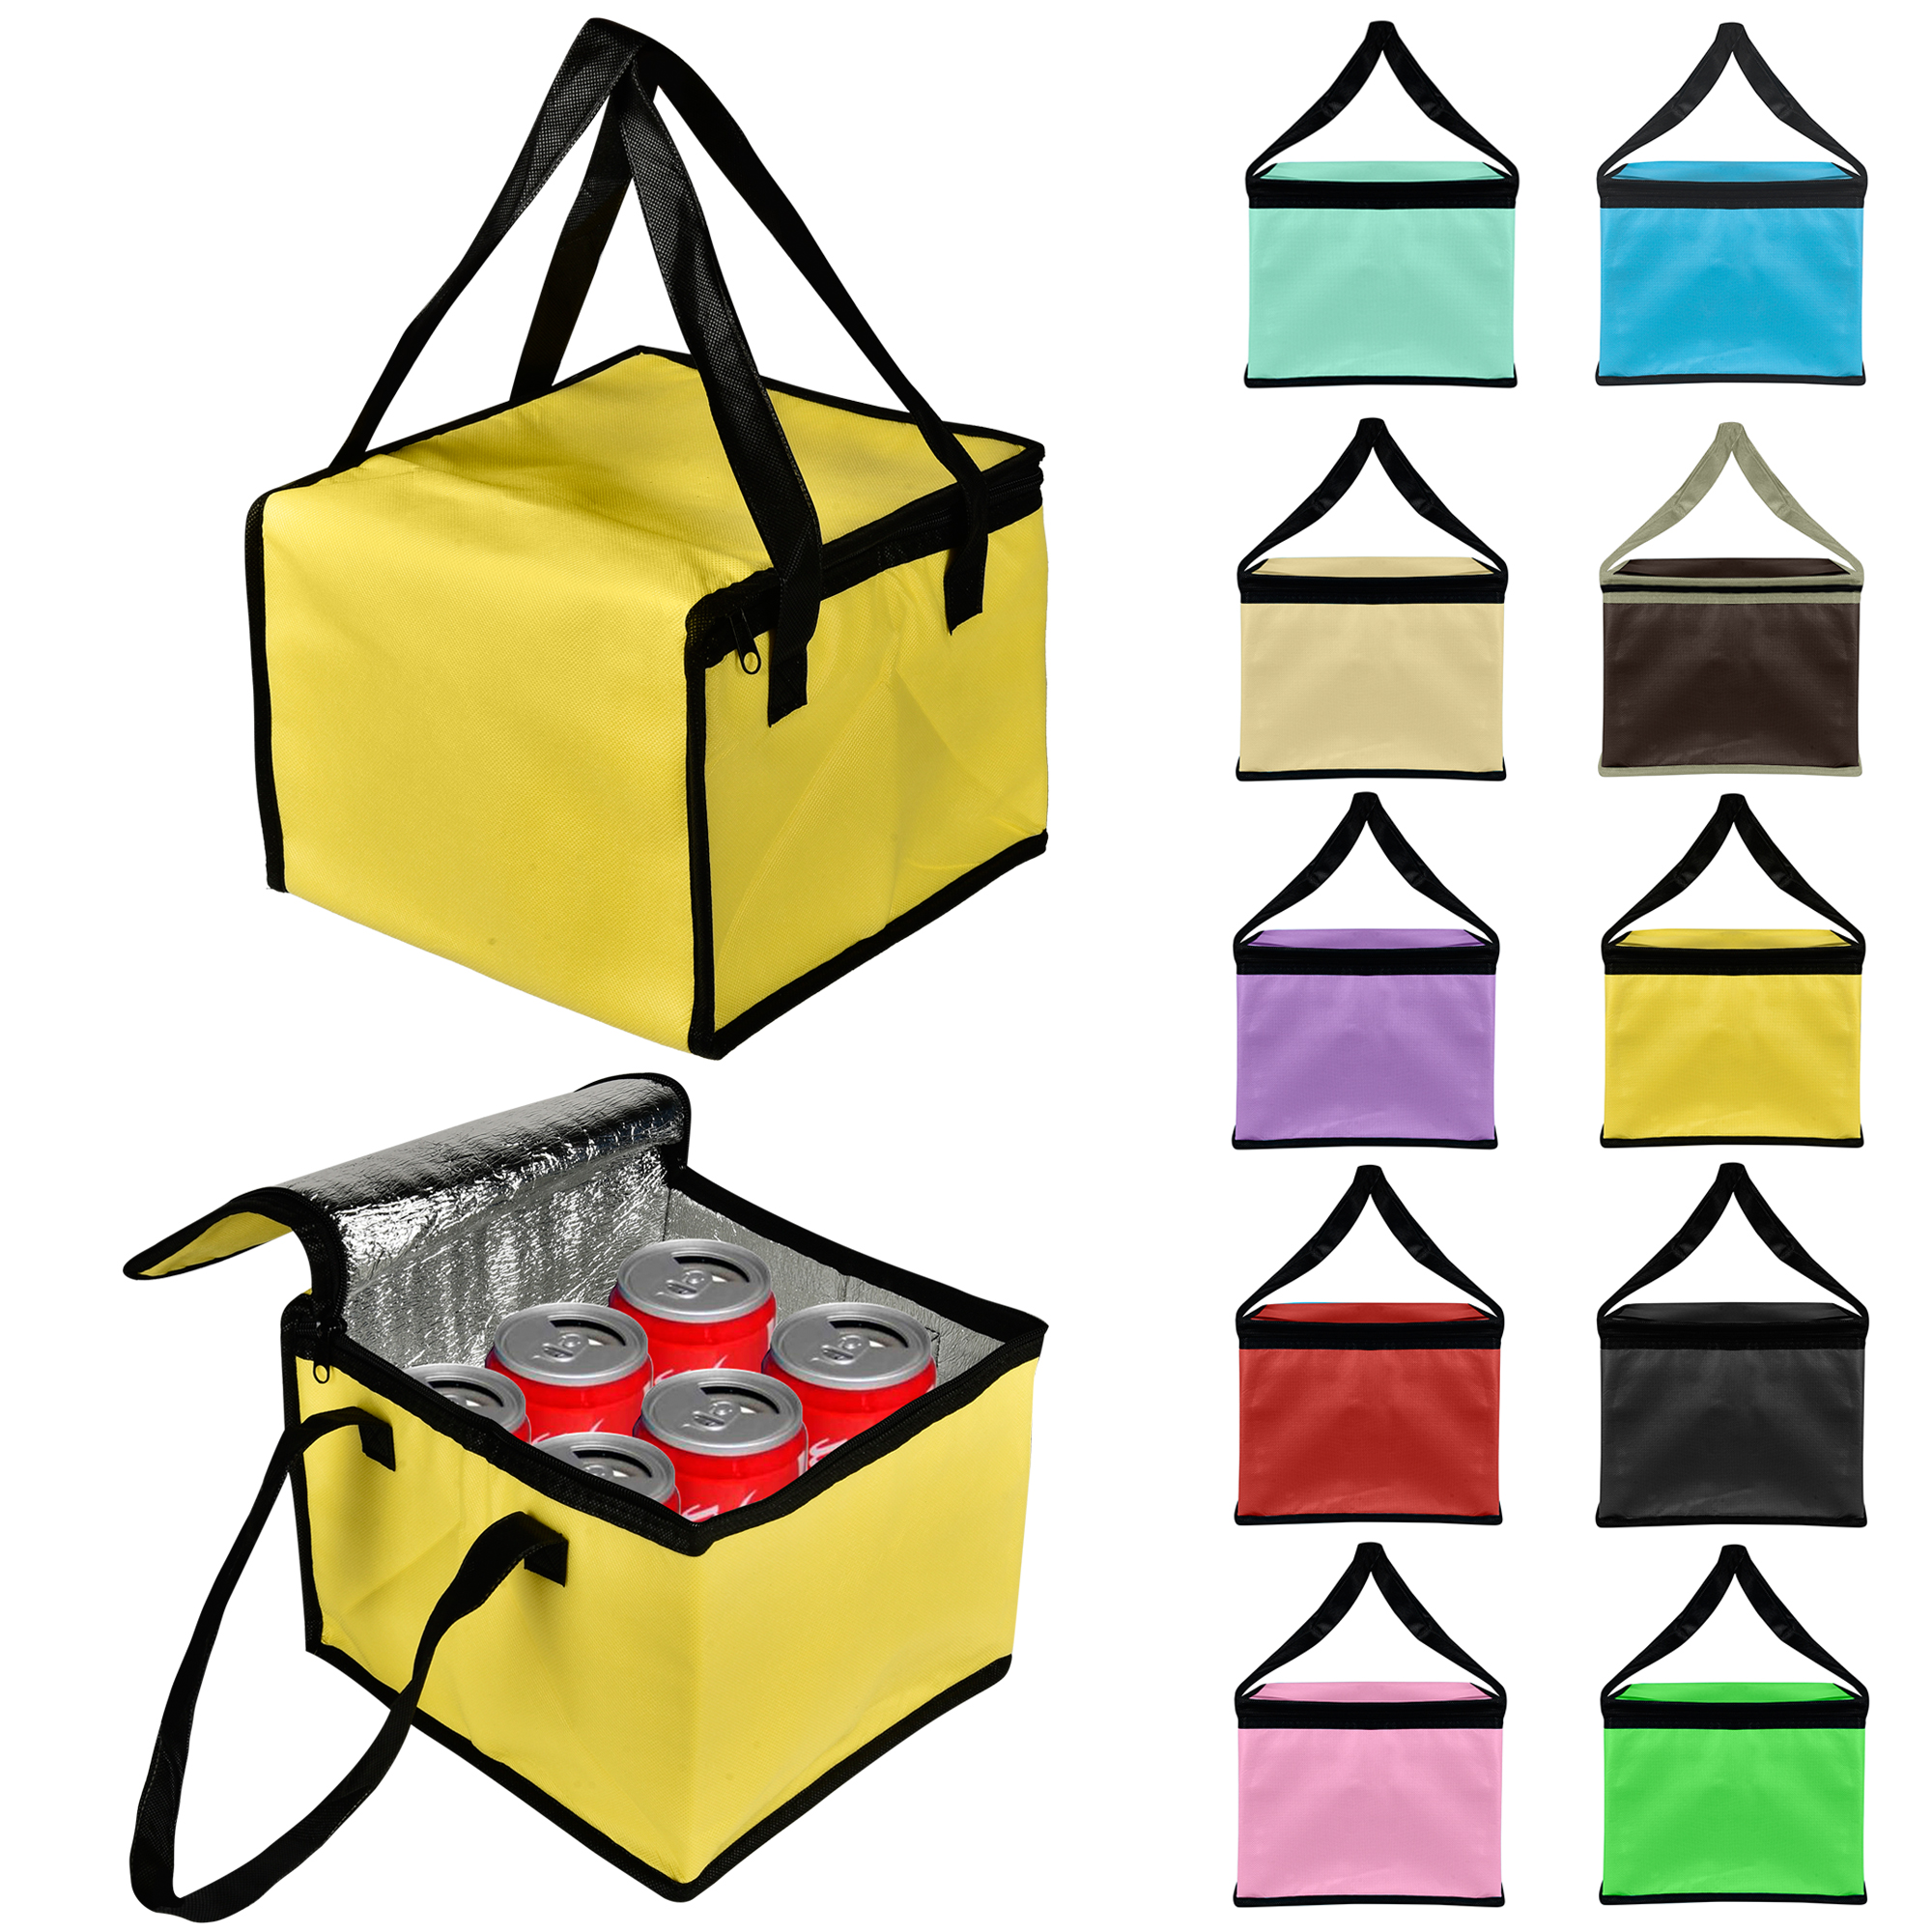 CUH Portable Cool Bag Cooler Food Insulated Can Drink Lunch Picnic Hiking 21L /12.5L